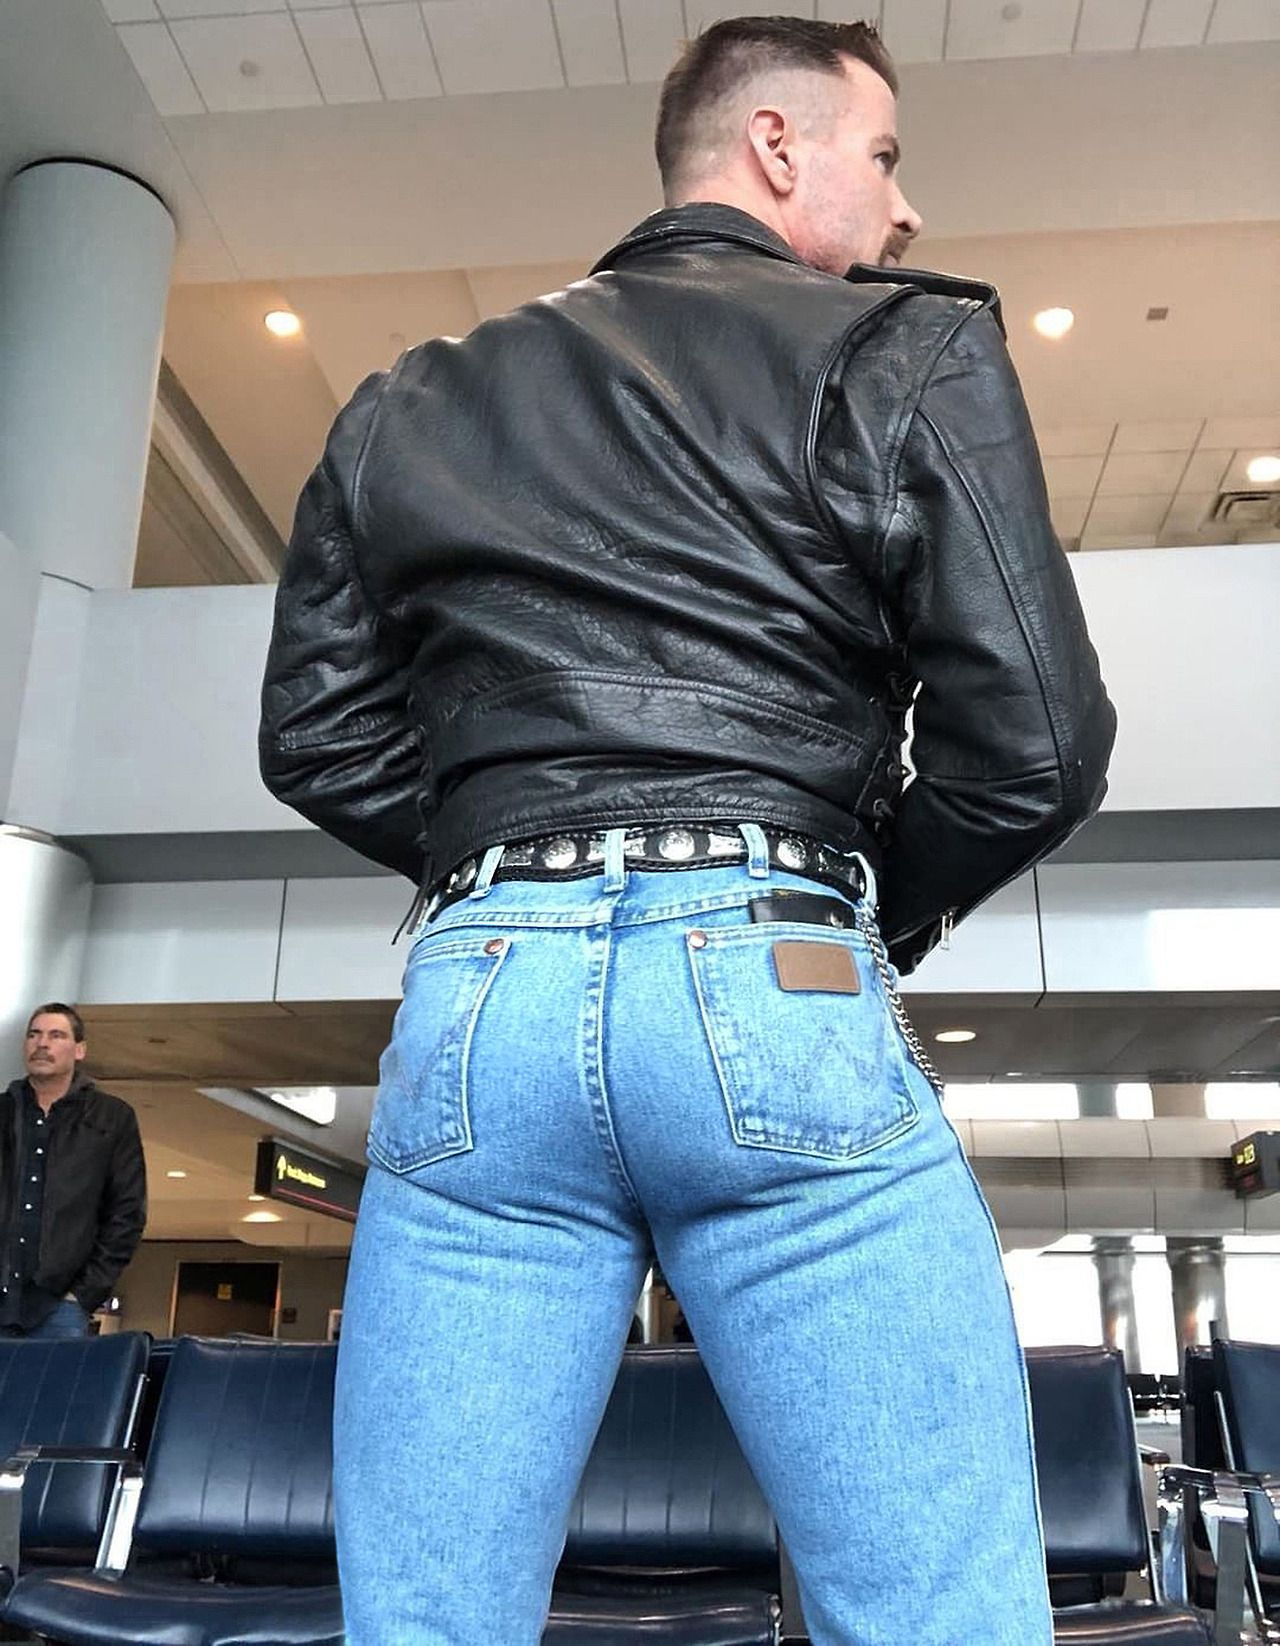 thewranglerbutts: wrangler the sexiest jeans ever - a cowboy